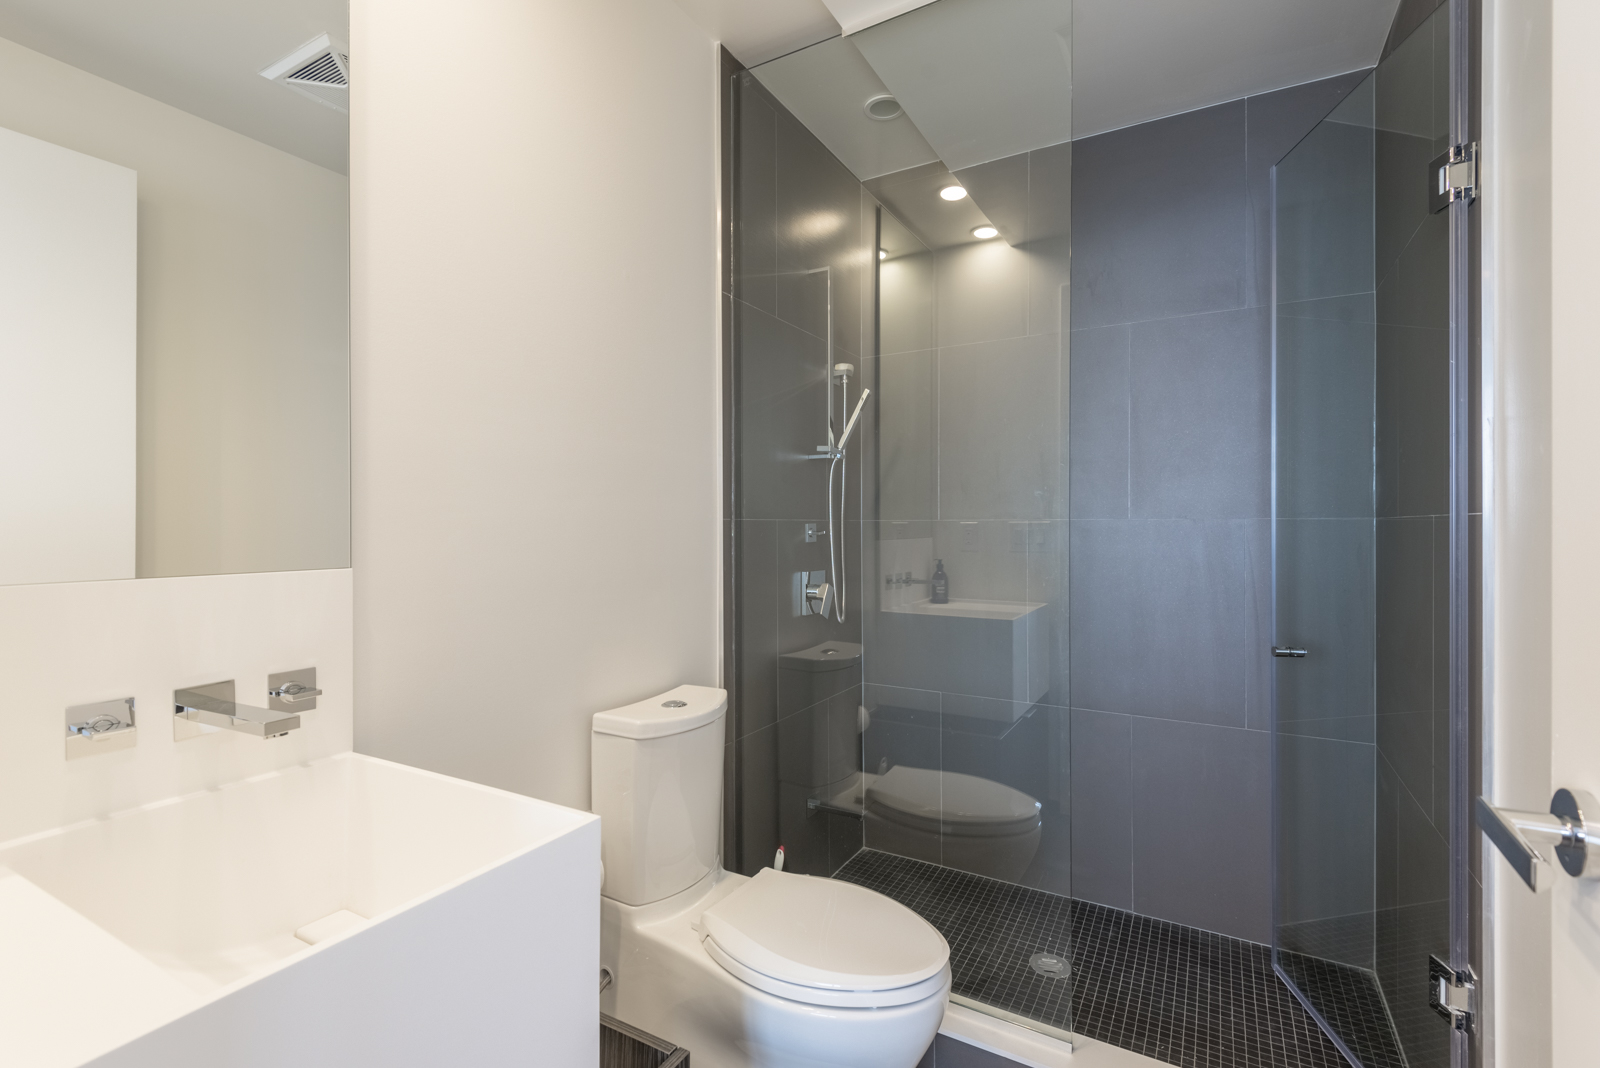 Photo showing condo bathroom with walk-in shower